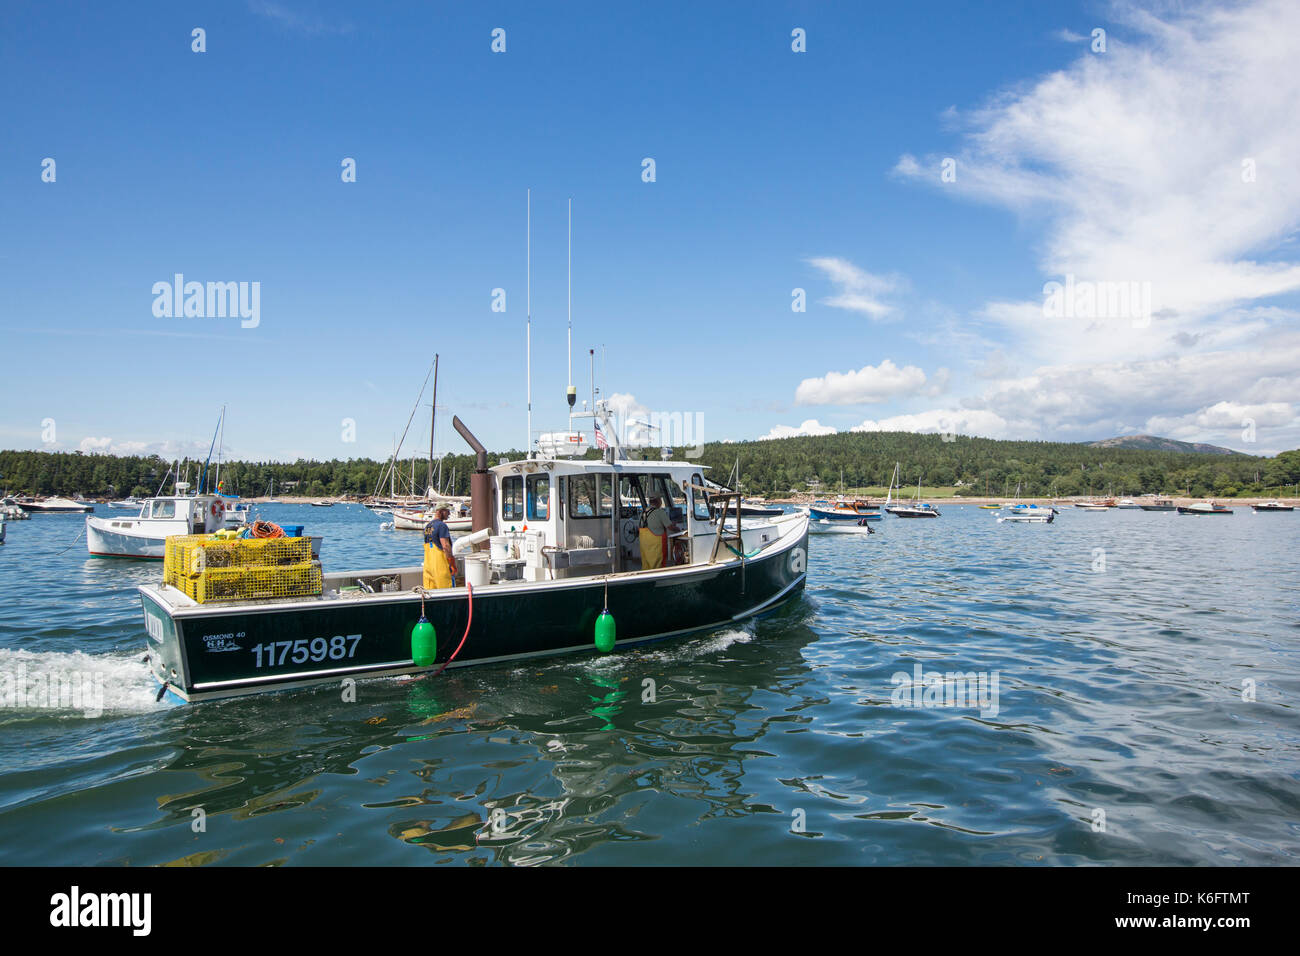 maine fishing boat stock photos maine fishing boat stock